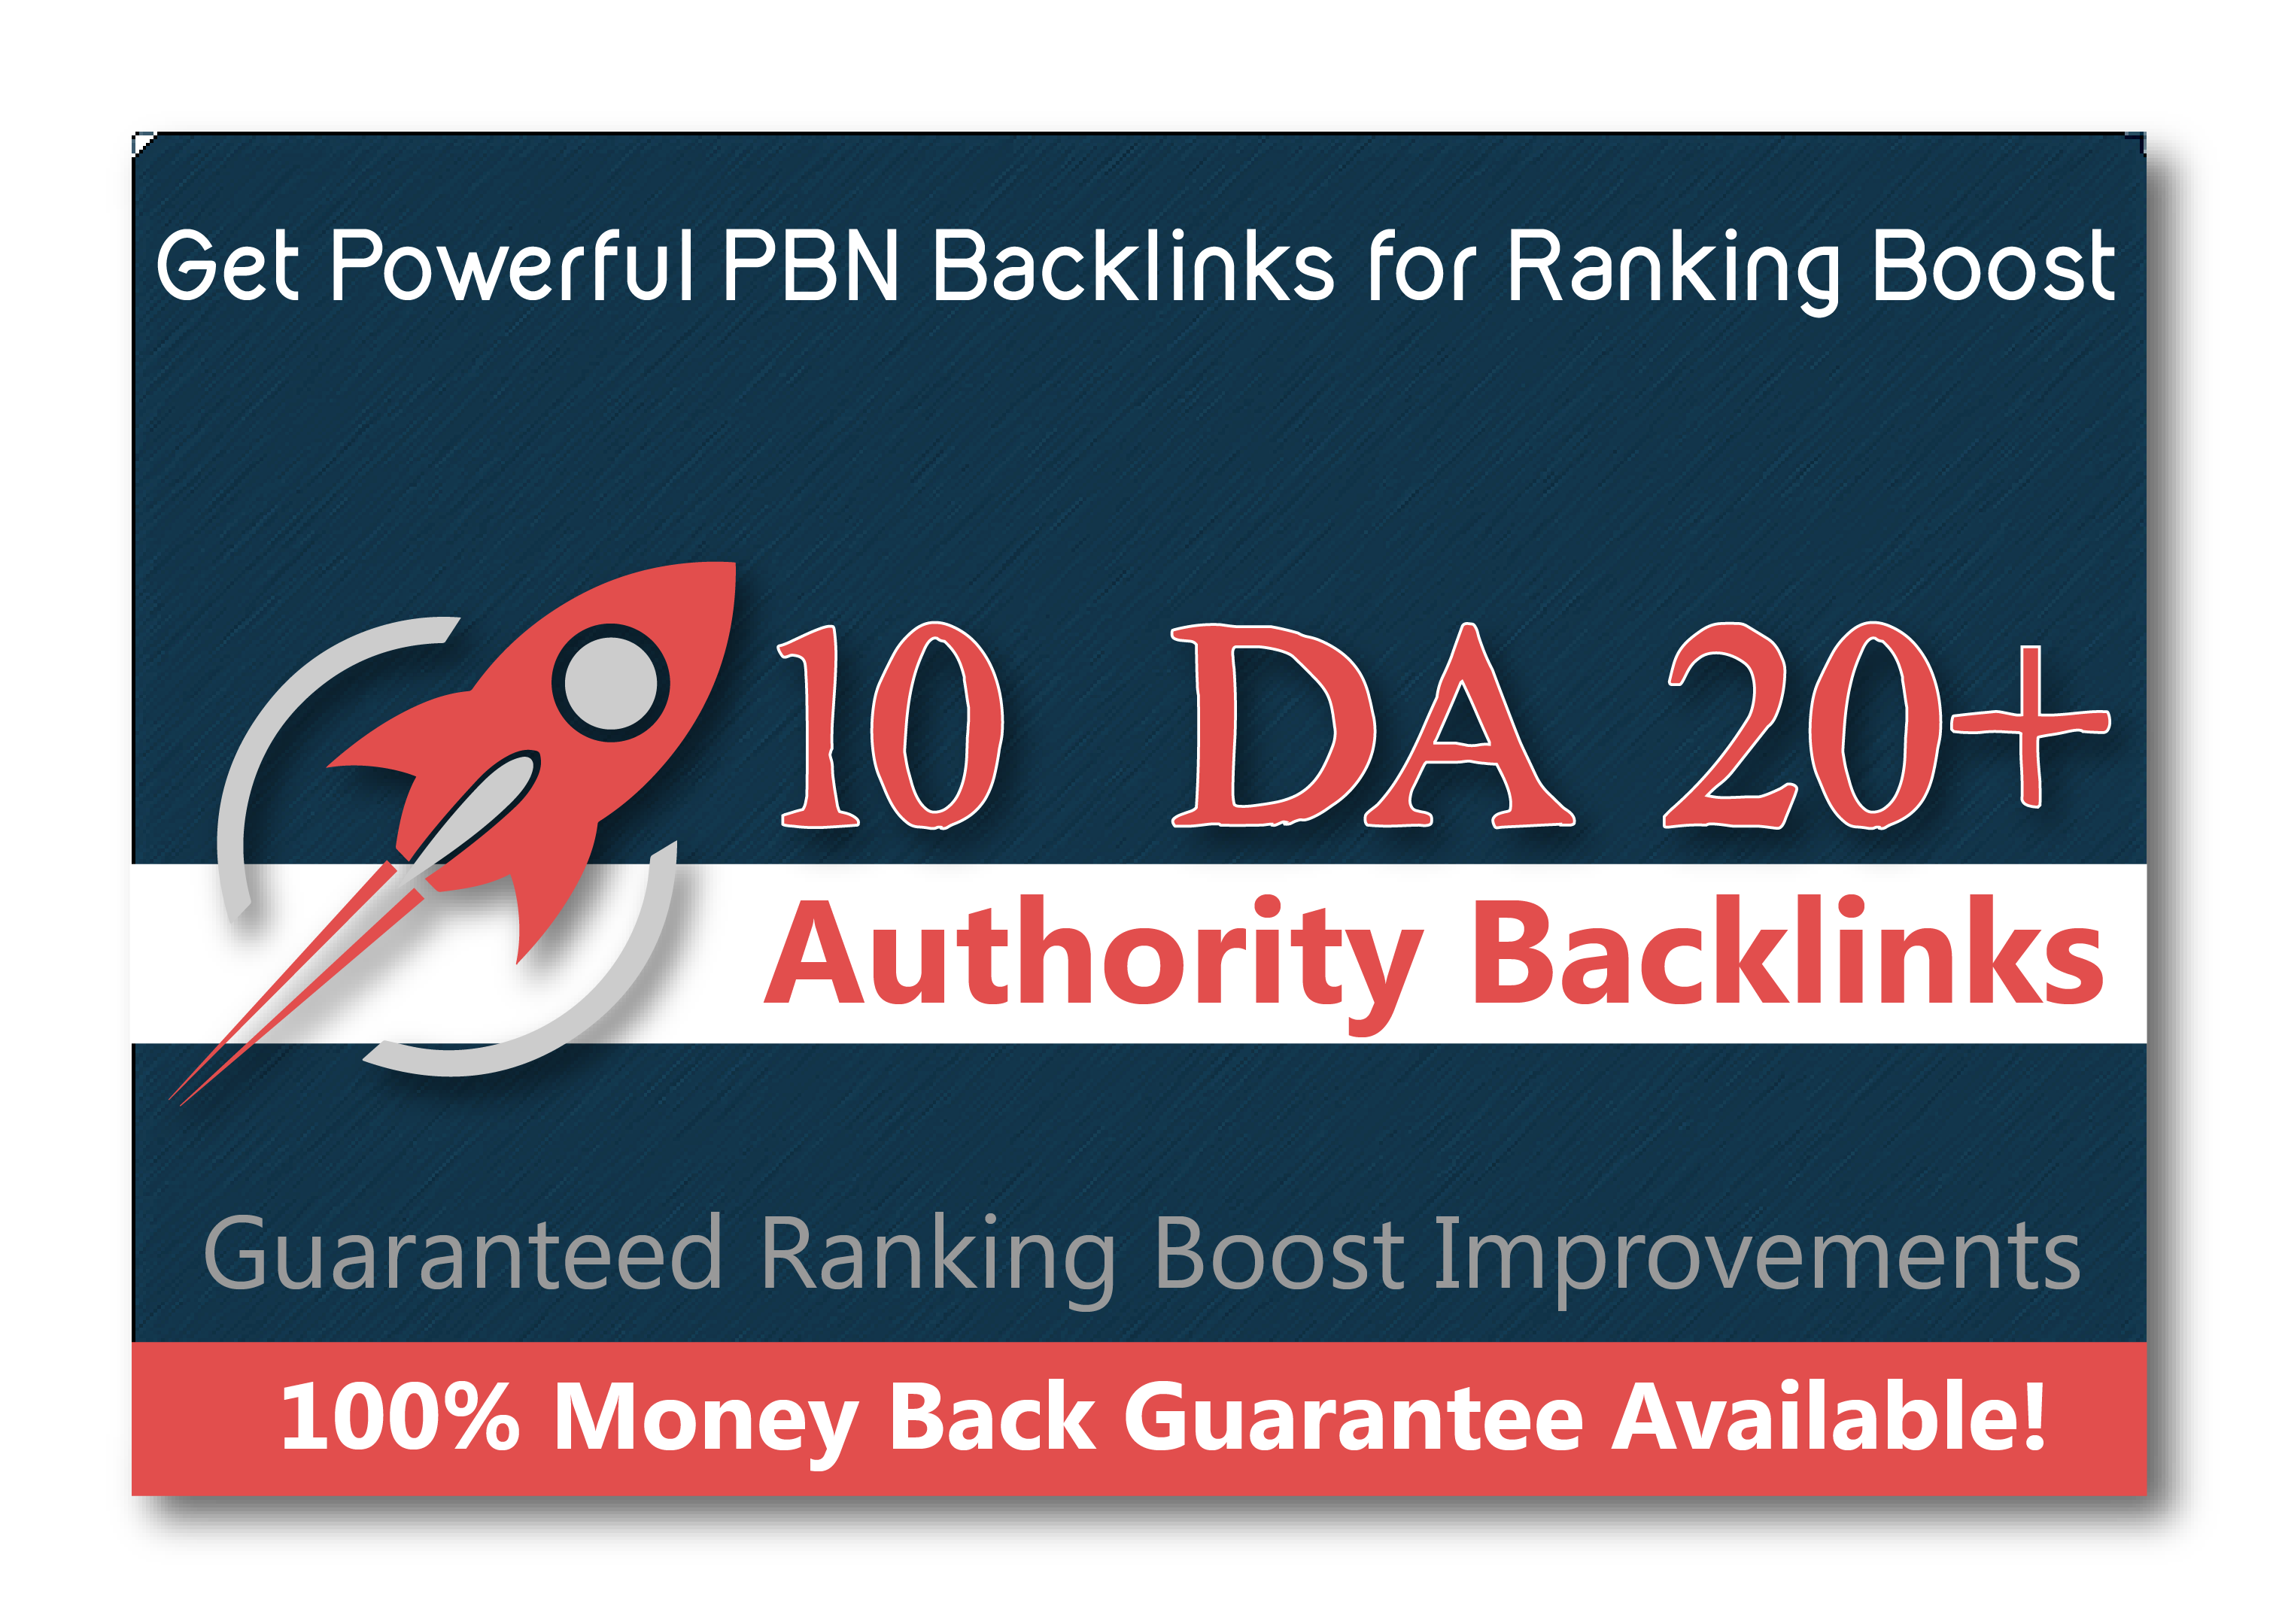 Build Authority 5 PBN Backlinks for Ranking Boost